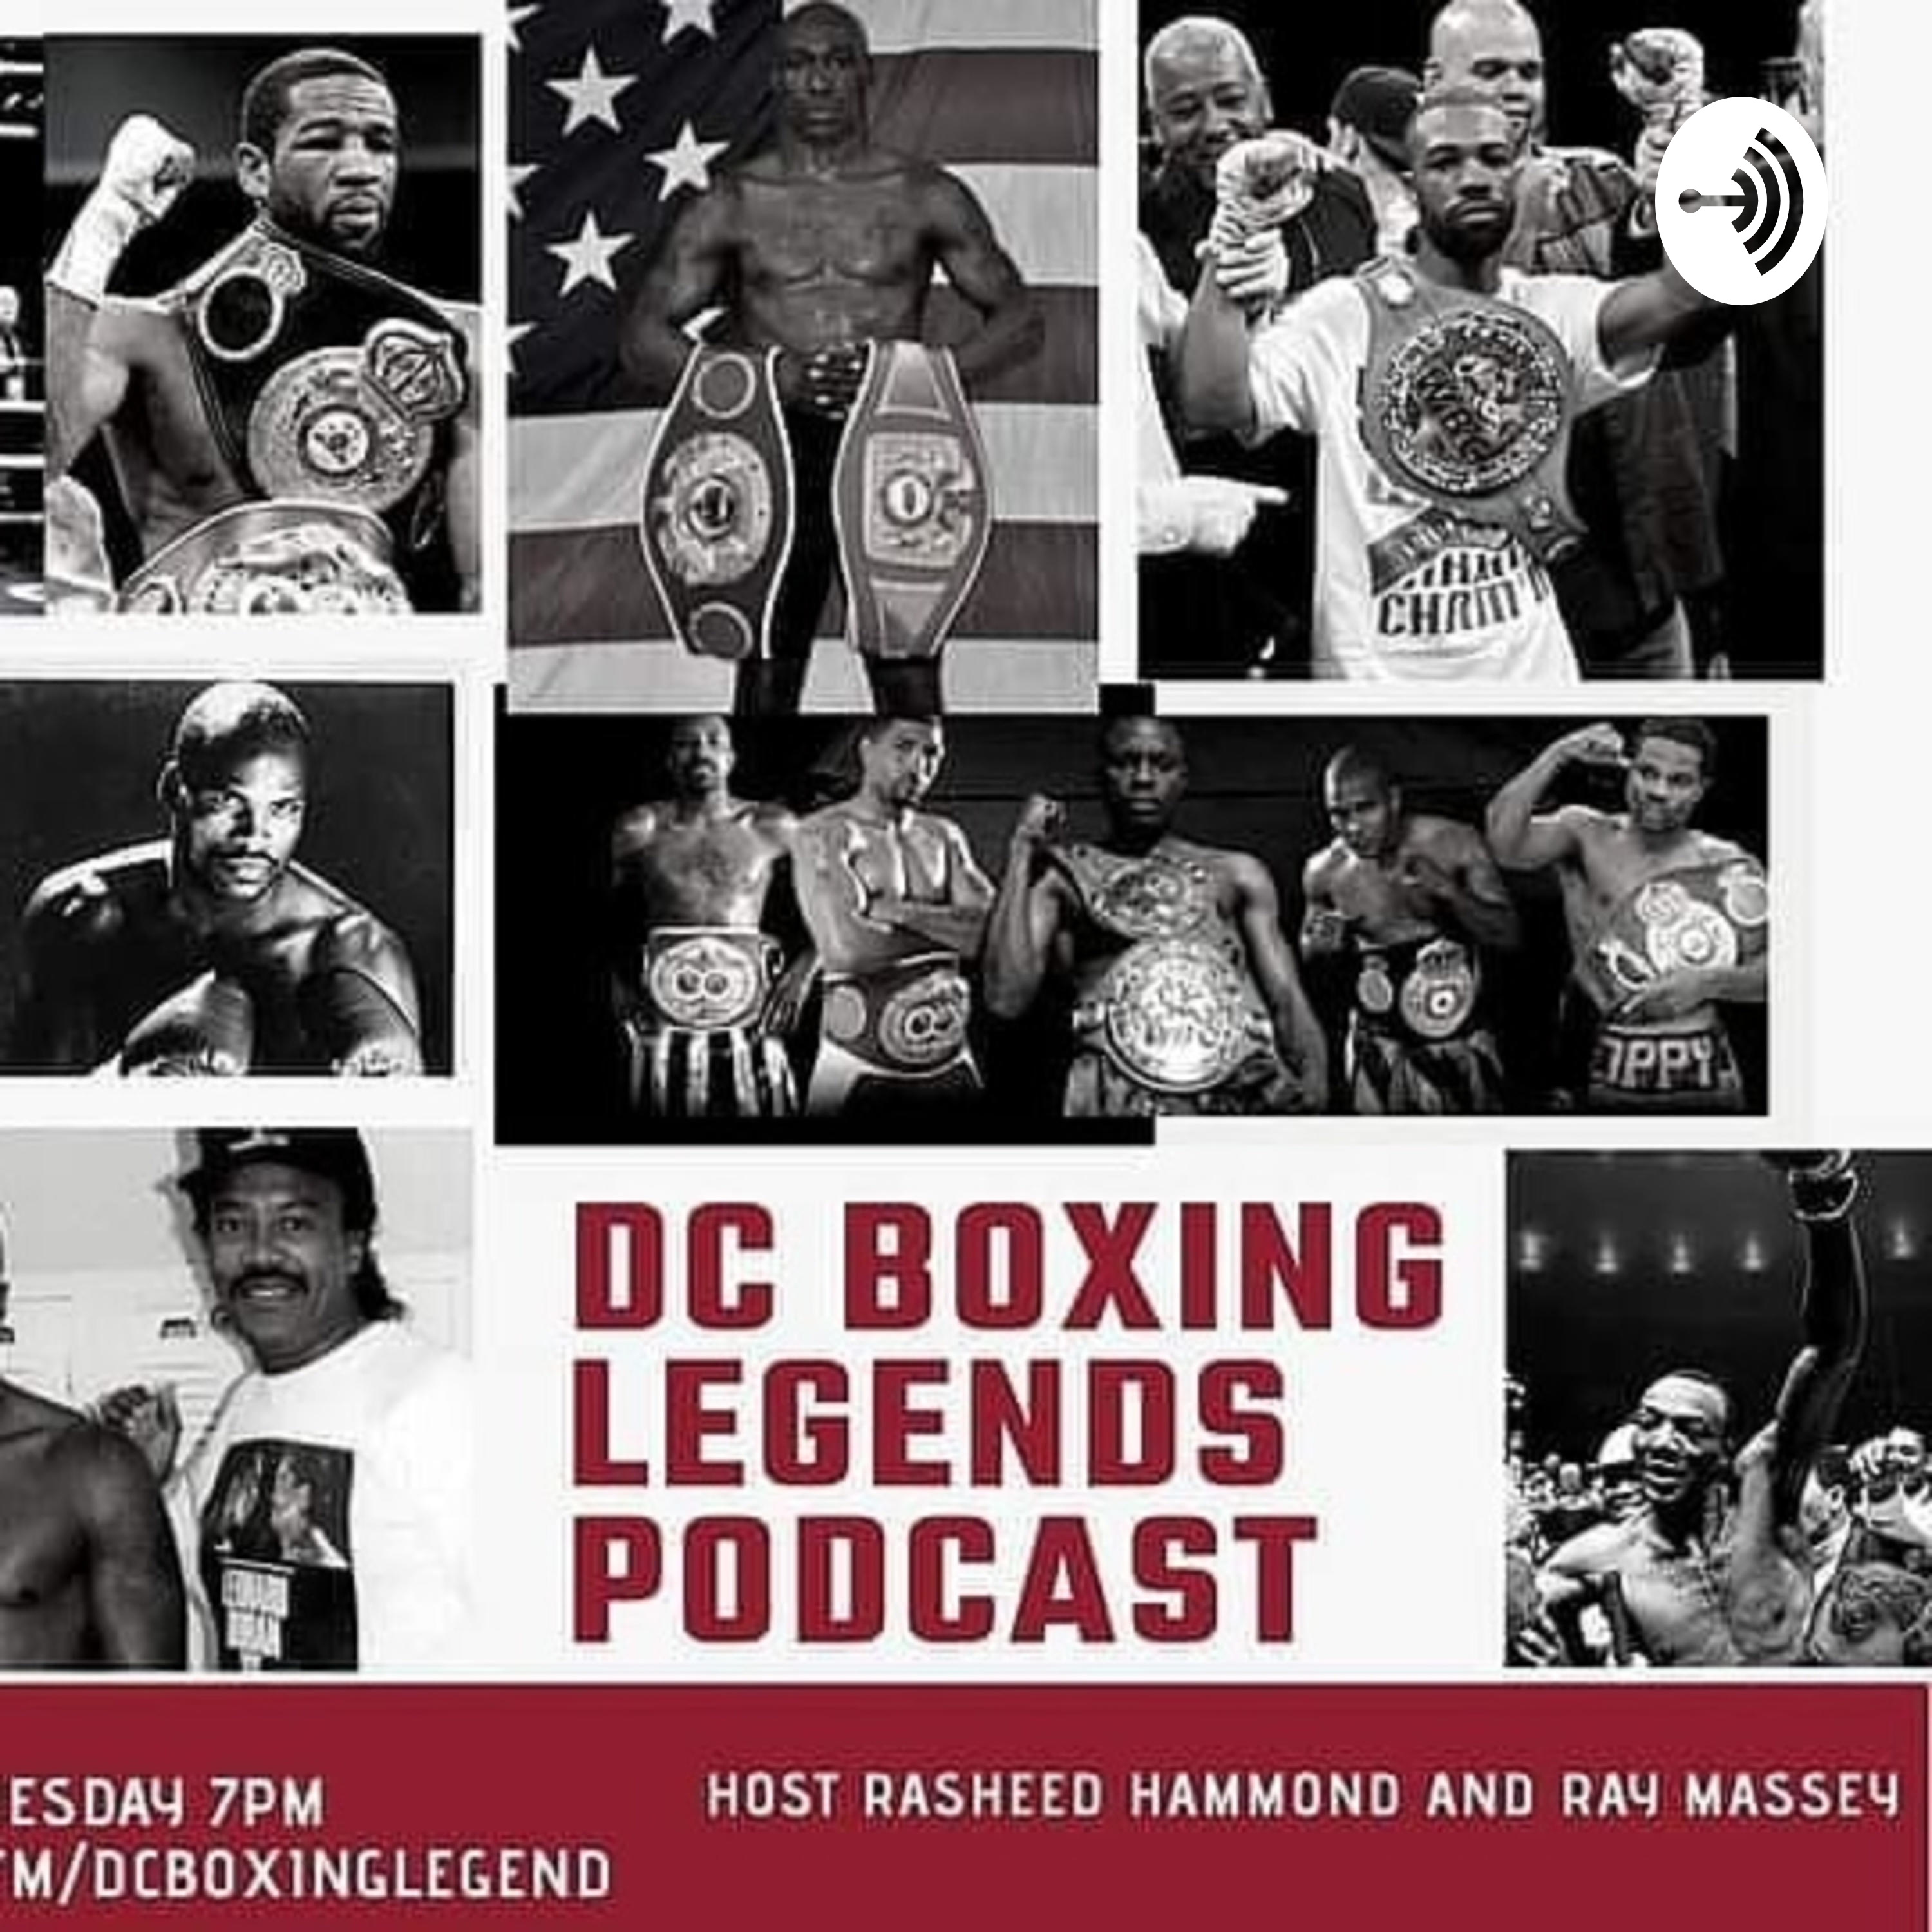 DC'S BOXING LEGENDS PODCAST